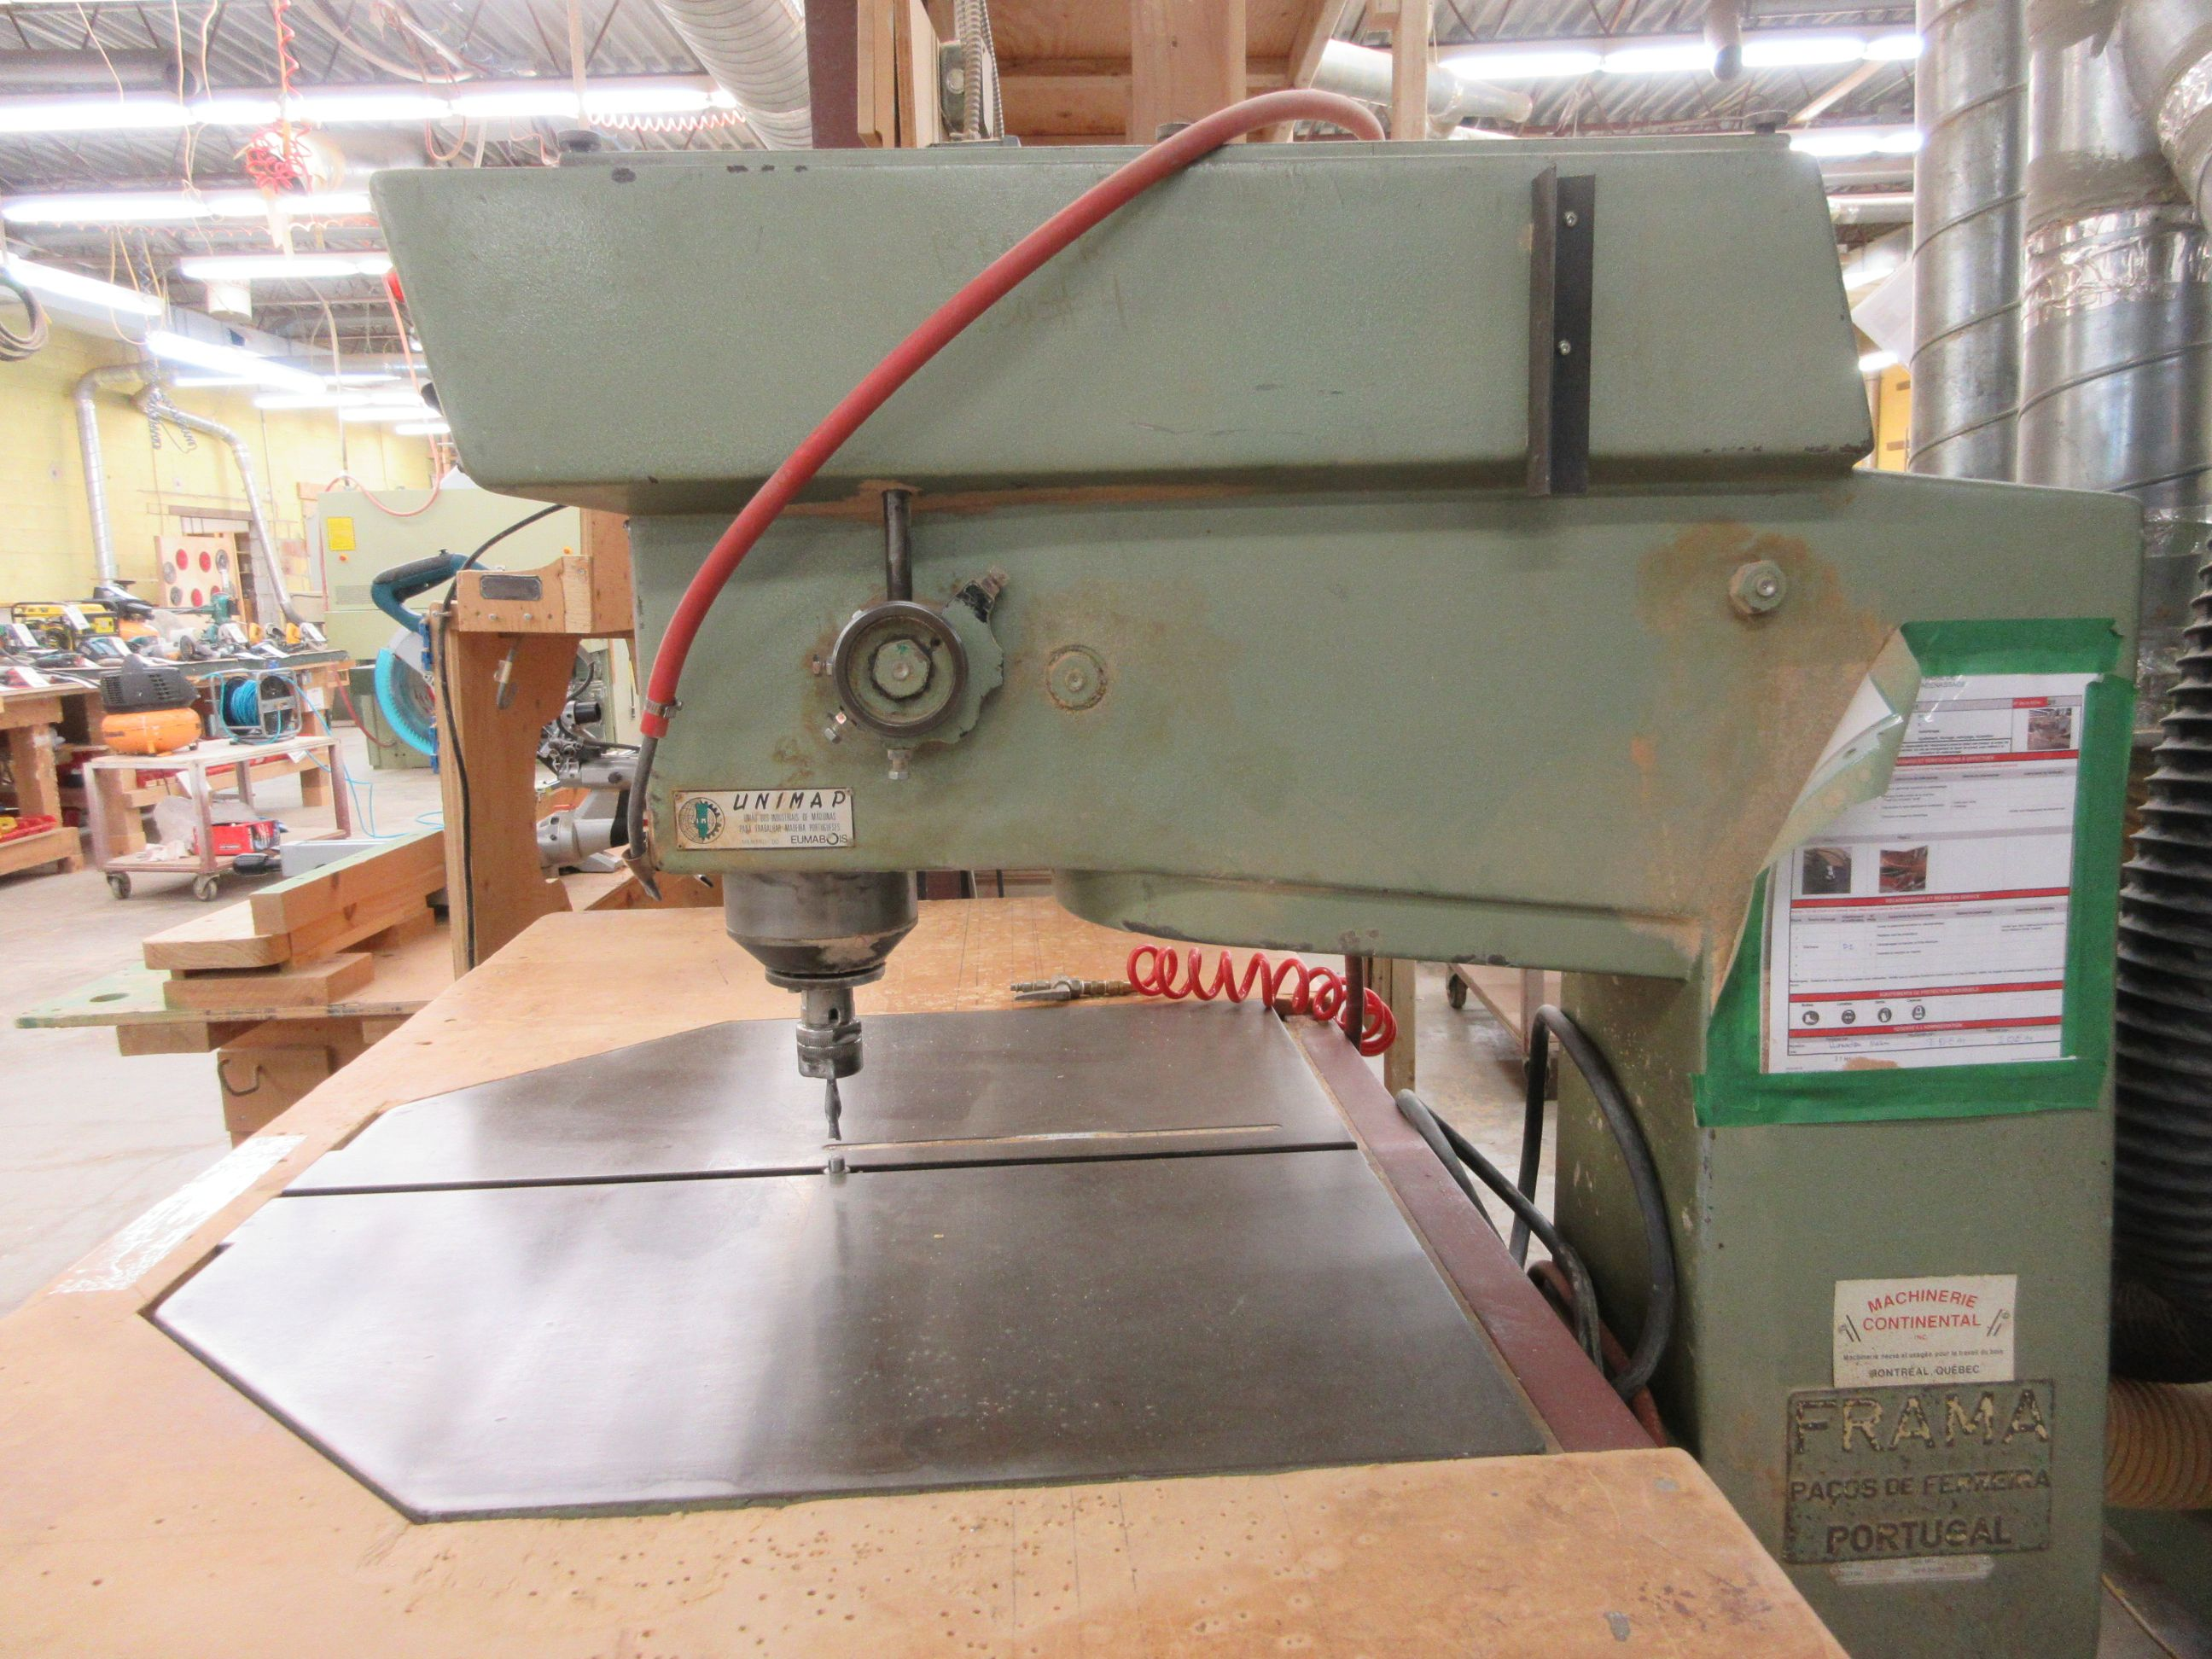 FRAMA overhead router, Mod: R-600, 600 volts (SUBJECT TO BANK APPROVAL) - Image 3 of 3